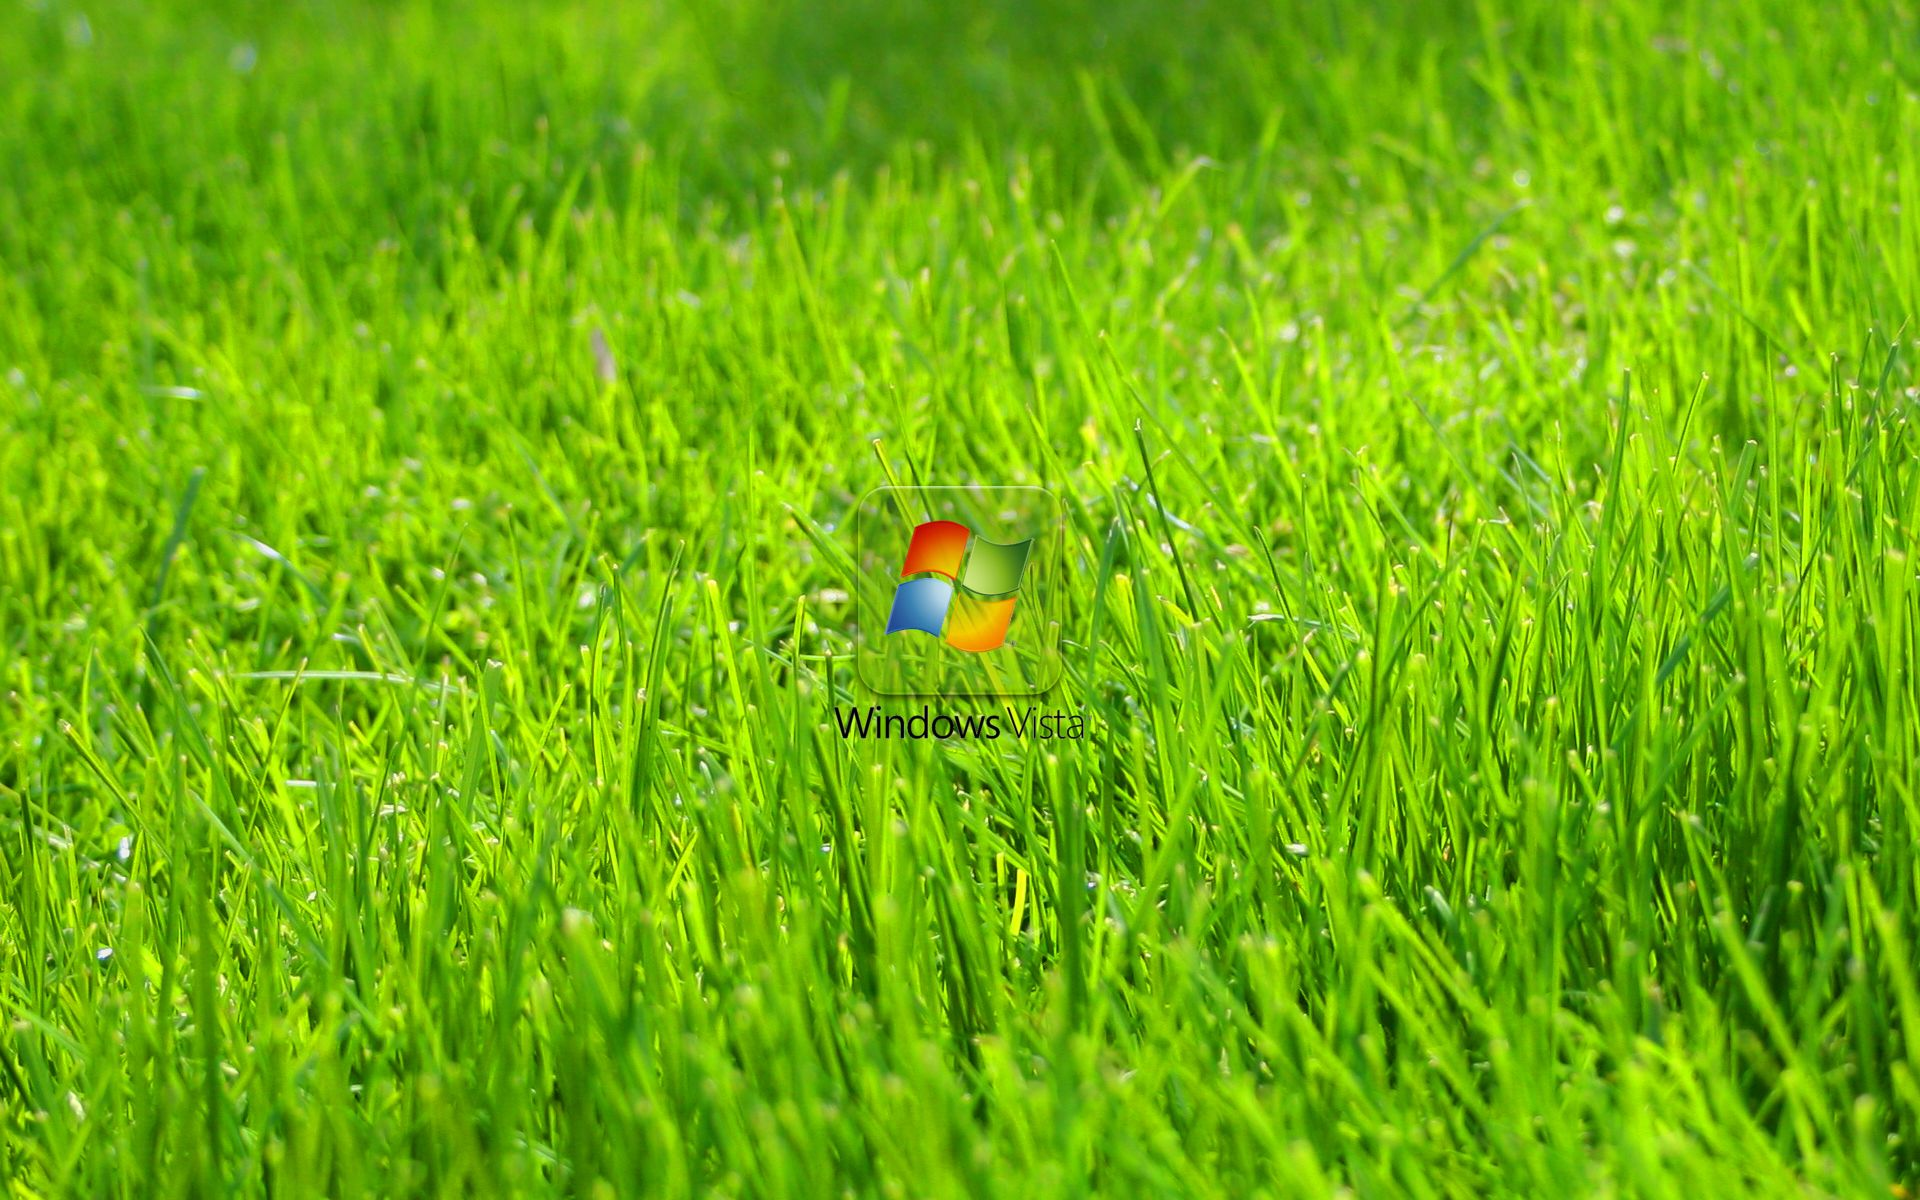 grass wallpapers hd backgrounds images pics photos free | hd